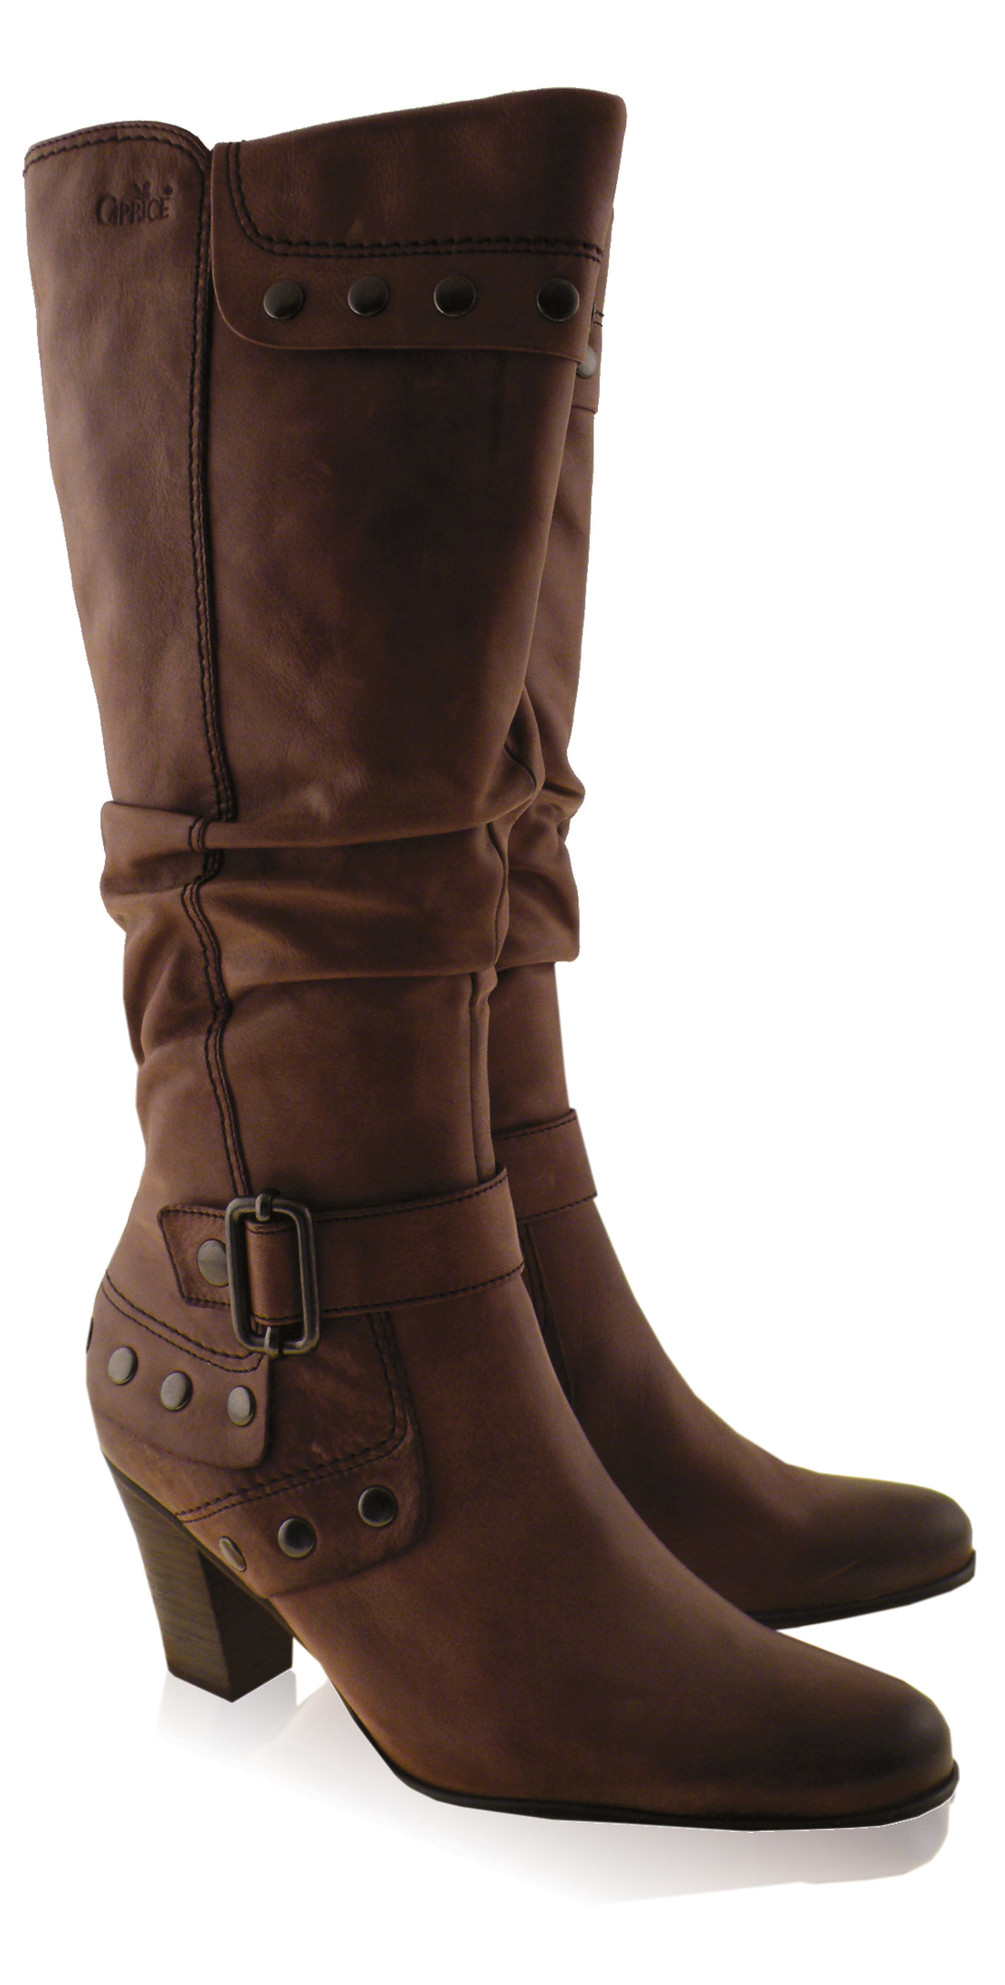 caprice footwear studded knee high boot in taupe